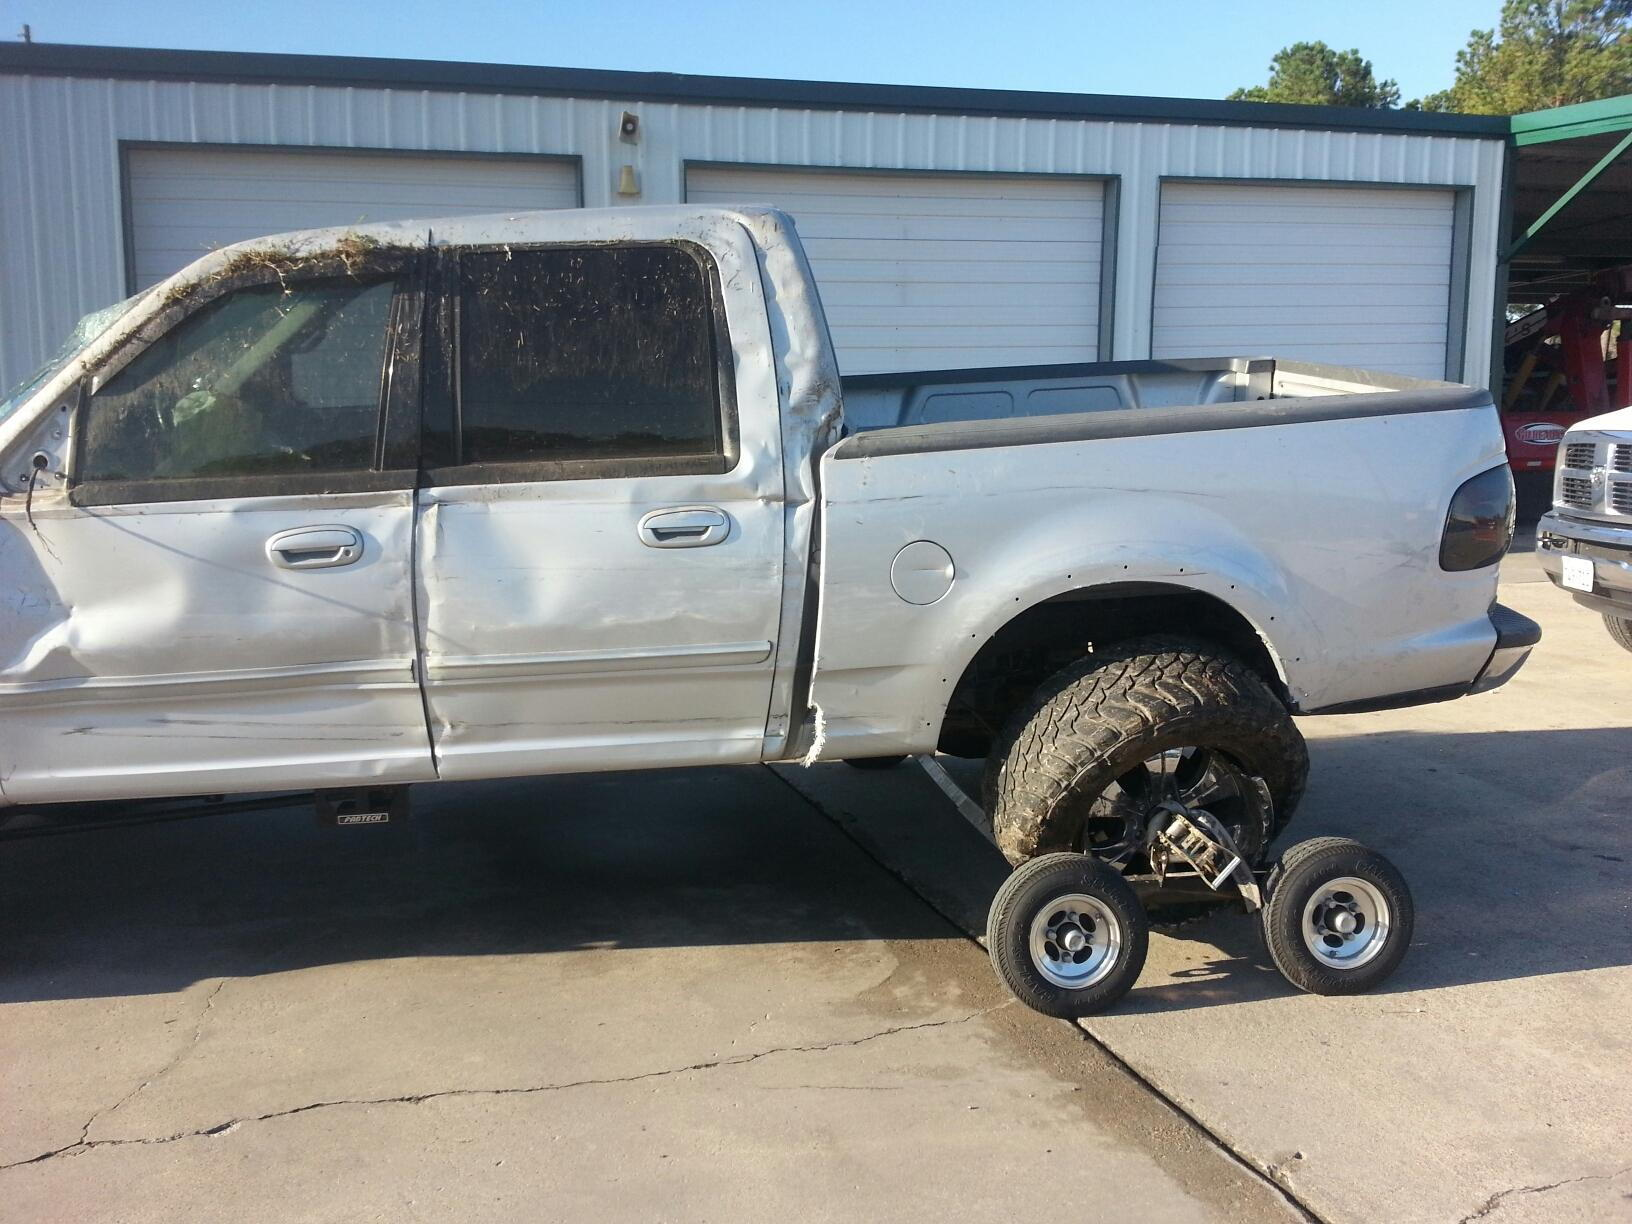 Ford F150 Wrecked >> Wrecked Truck... - Ford F150 Forum - Community of Ford Truck Fans